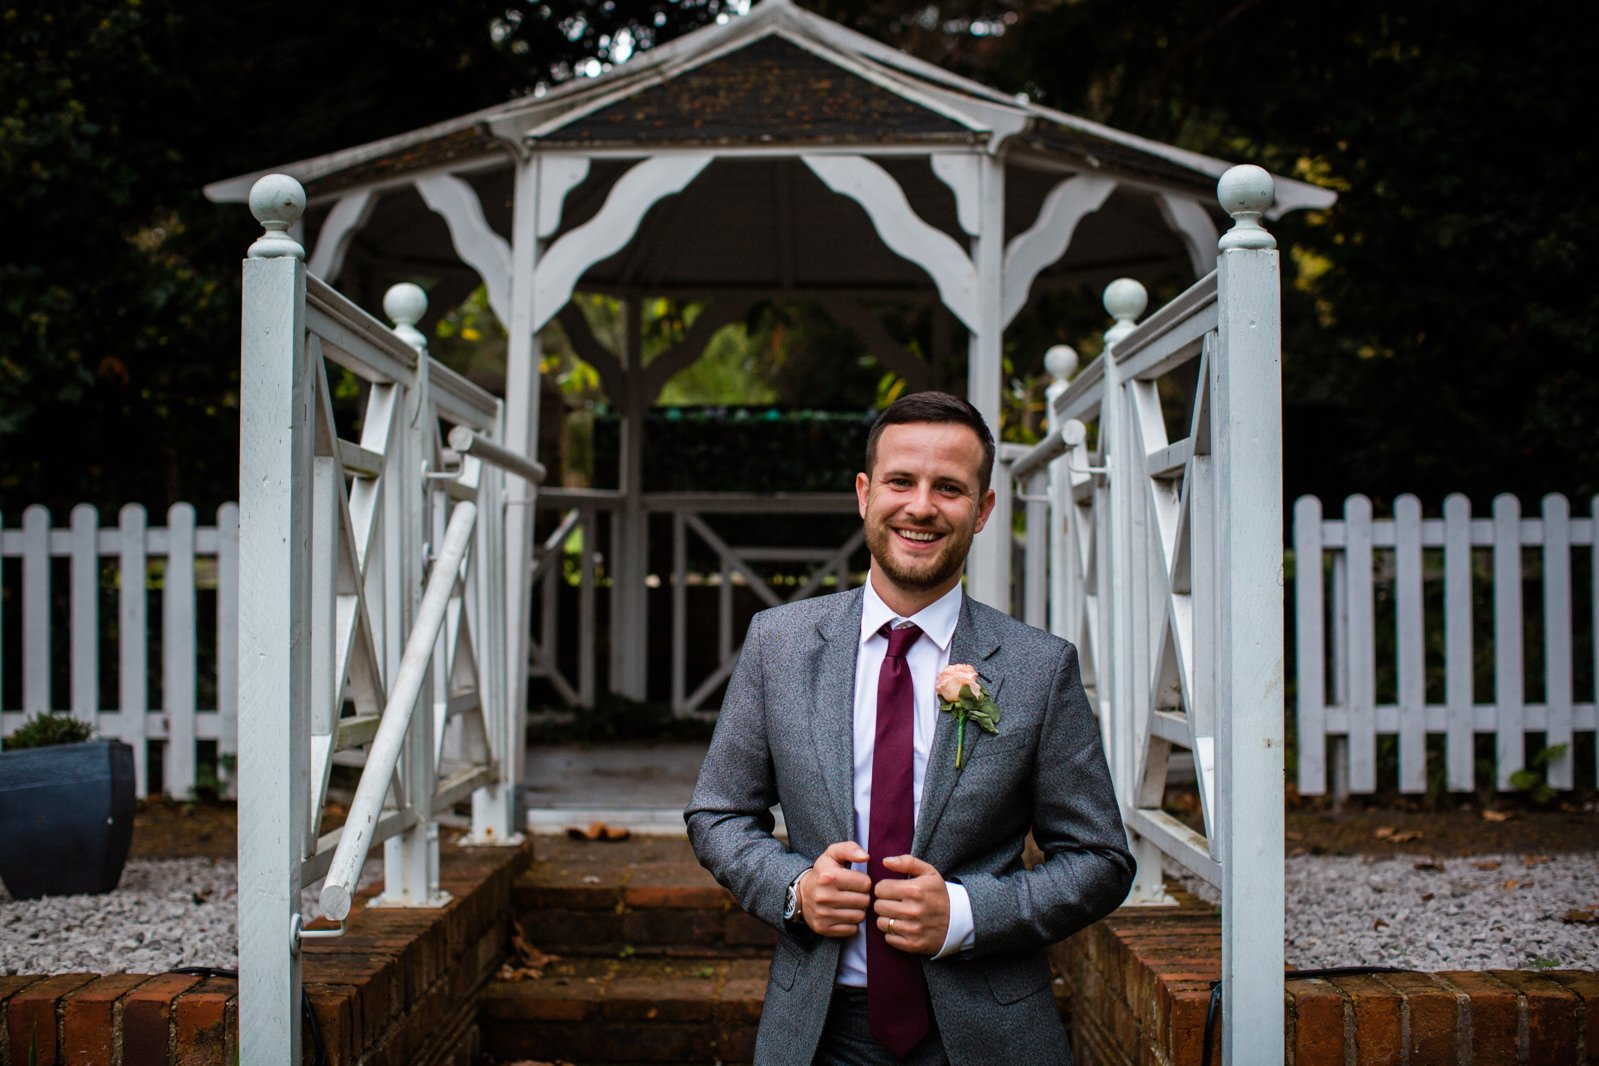 The Elephant Pangbourne Wedding - Stunning Kayleigh & Shane 51